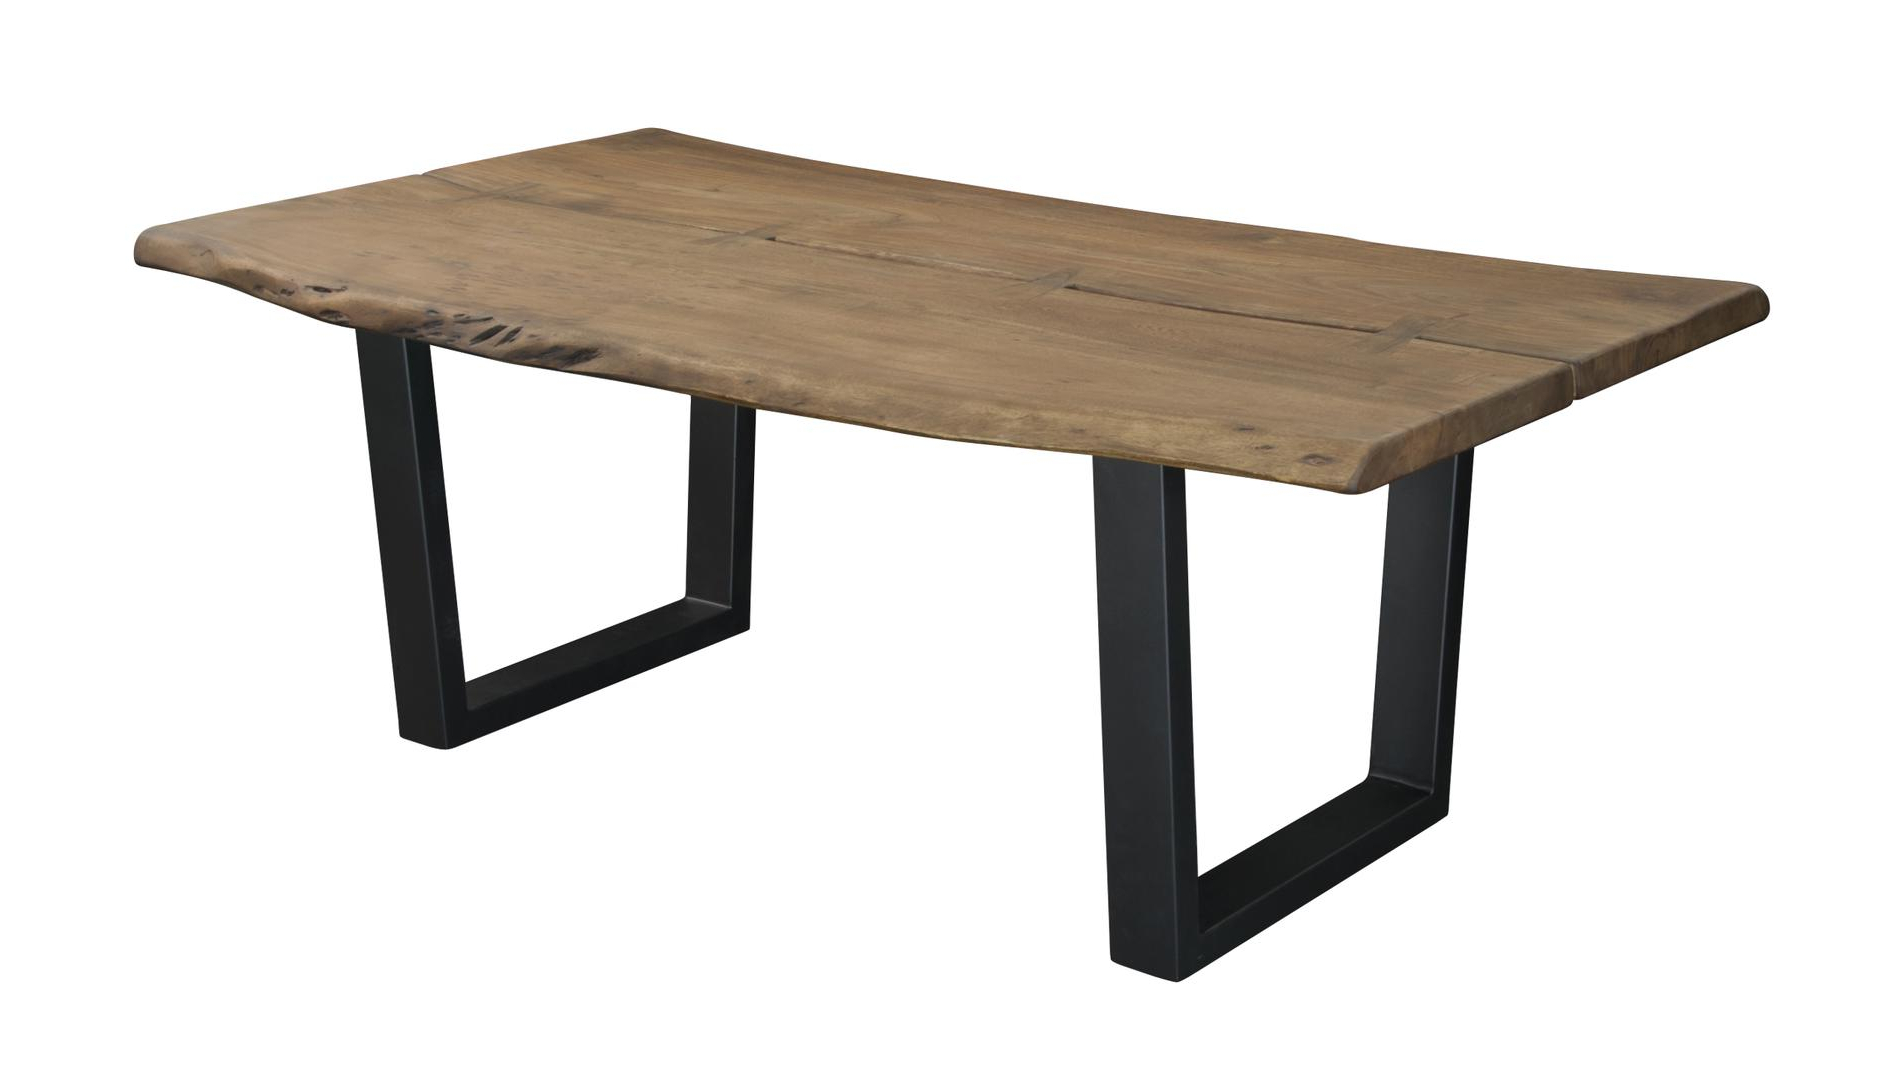 Newest Coast To Coast 75354 Pertaining To Acacia Top Dining Tables With Metal Legs (View 7 of 30)